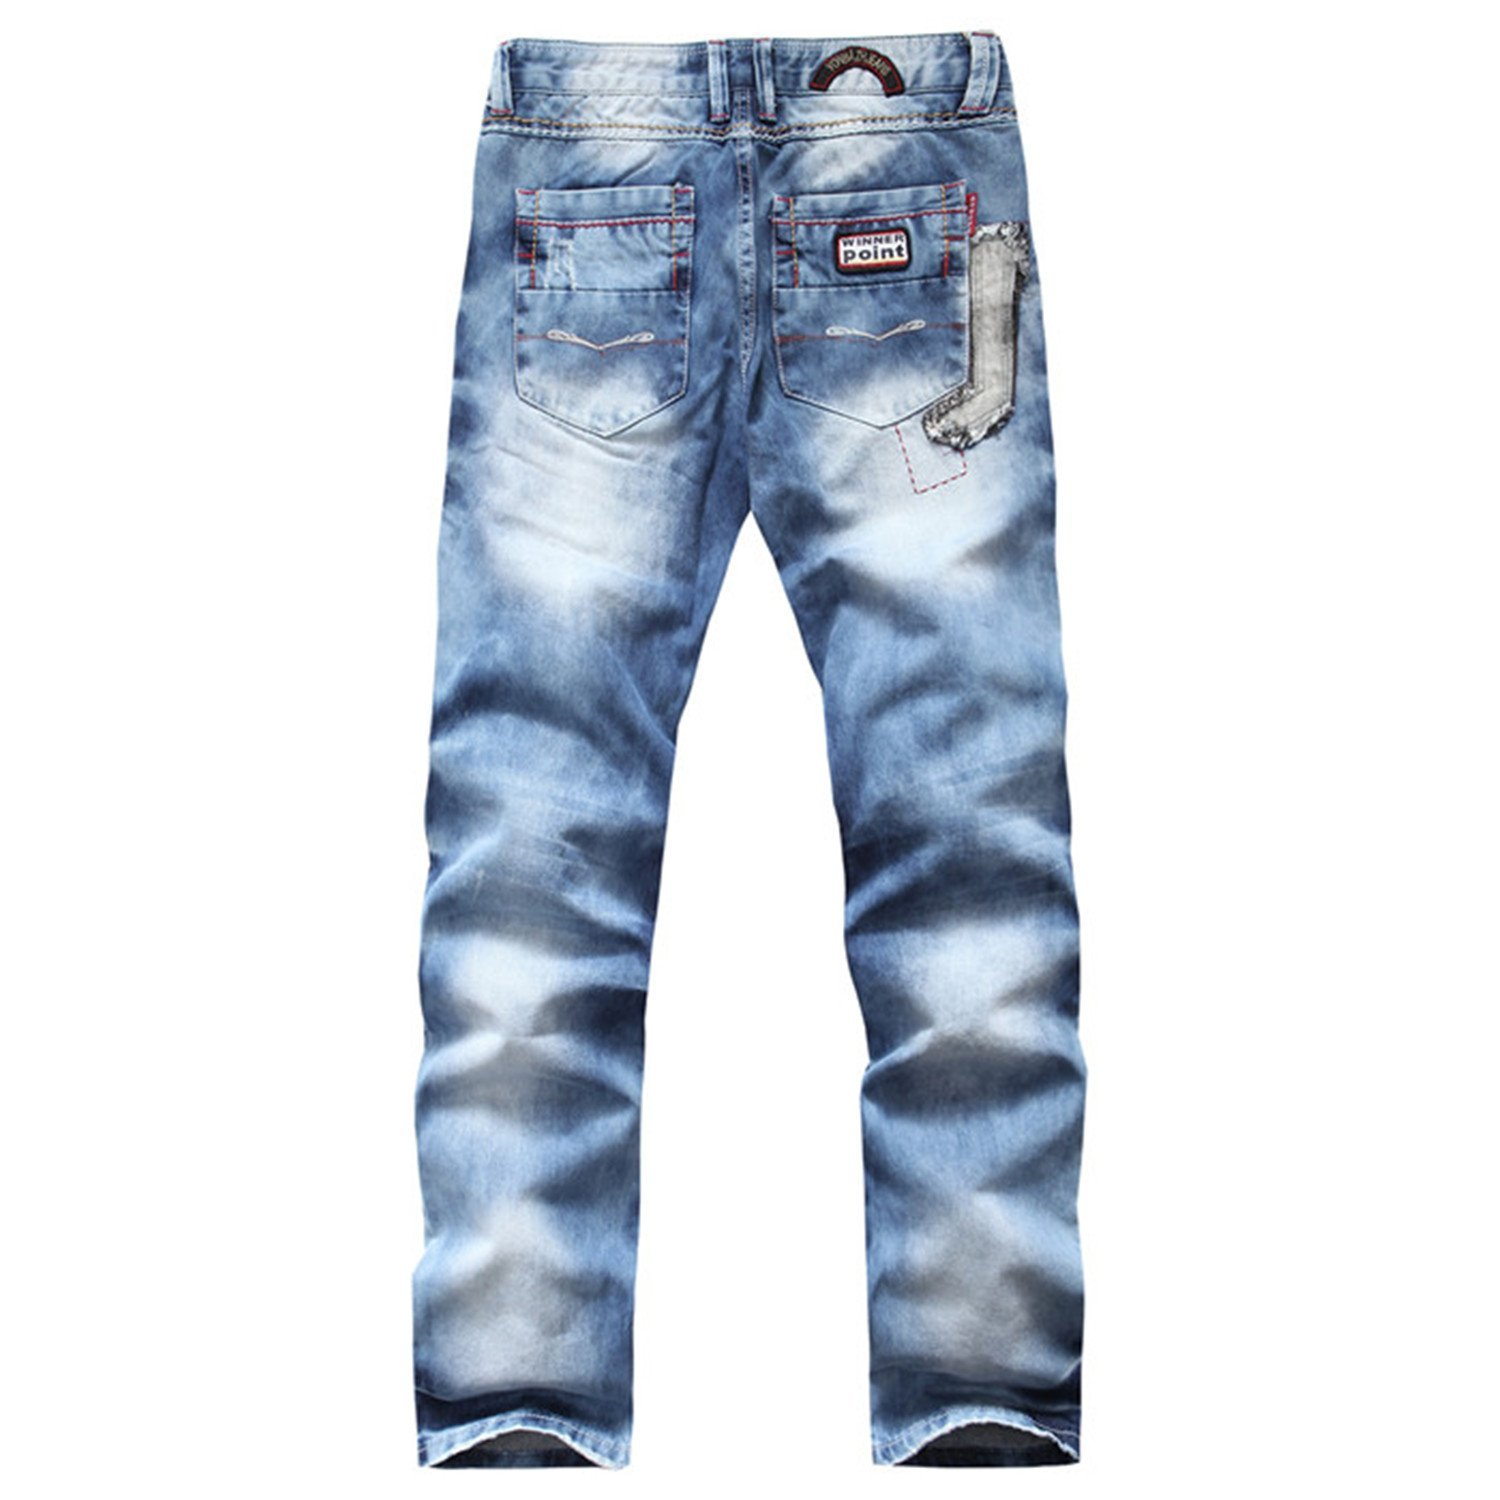 TOPING Fine Popular Clothing Style Hole Patch Jeans Autumn and Winter Fashion Men Straight beggar Trousers Blue Blue32